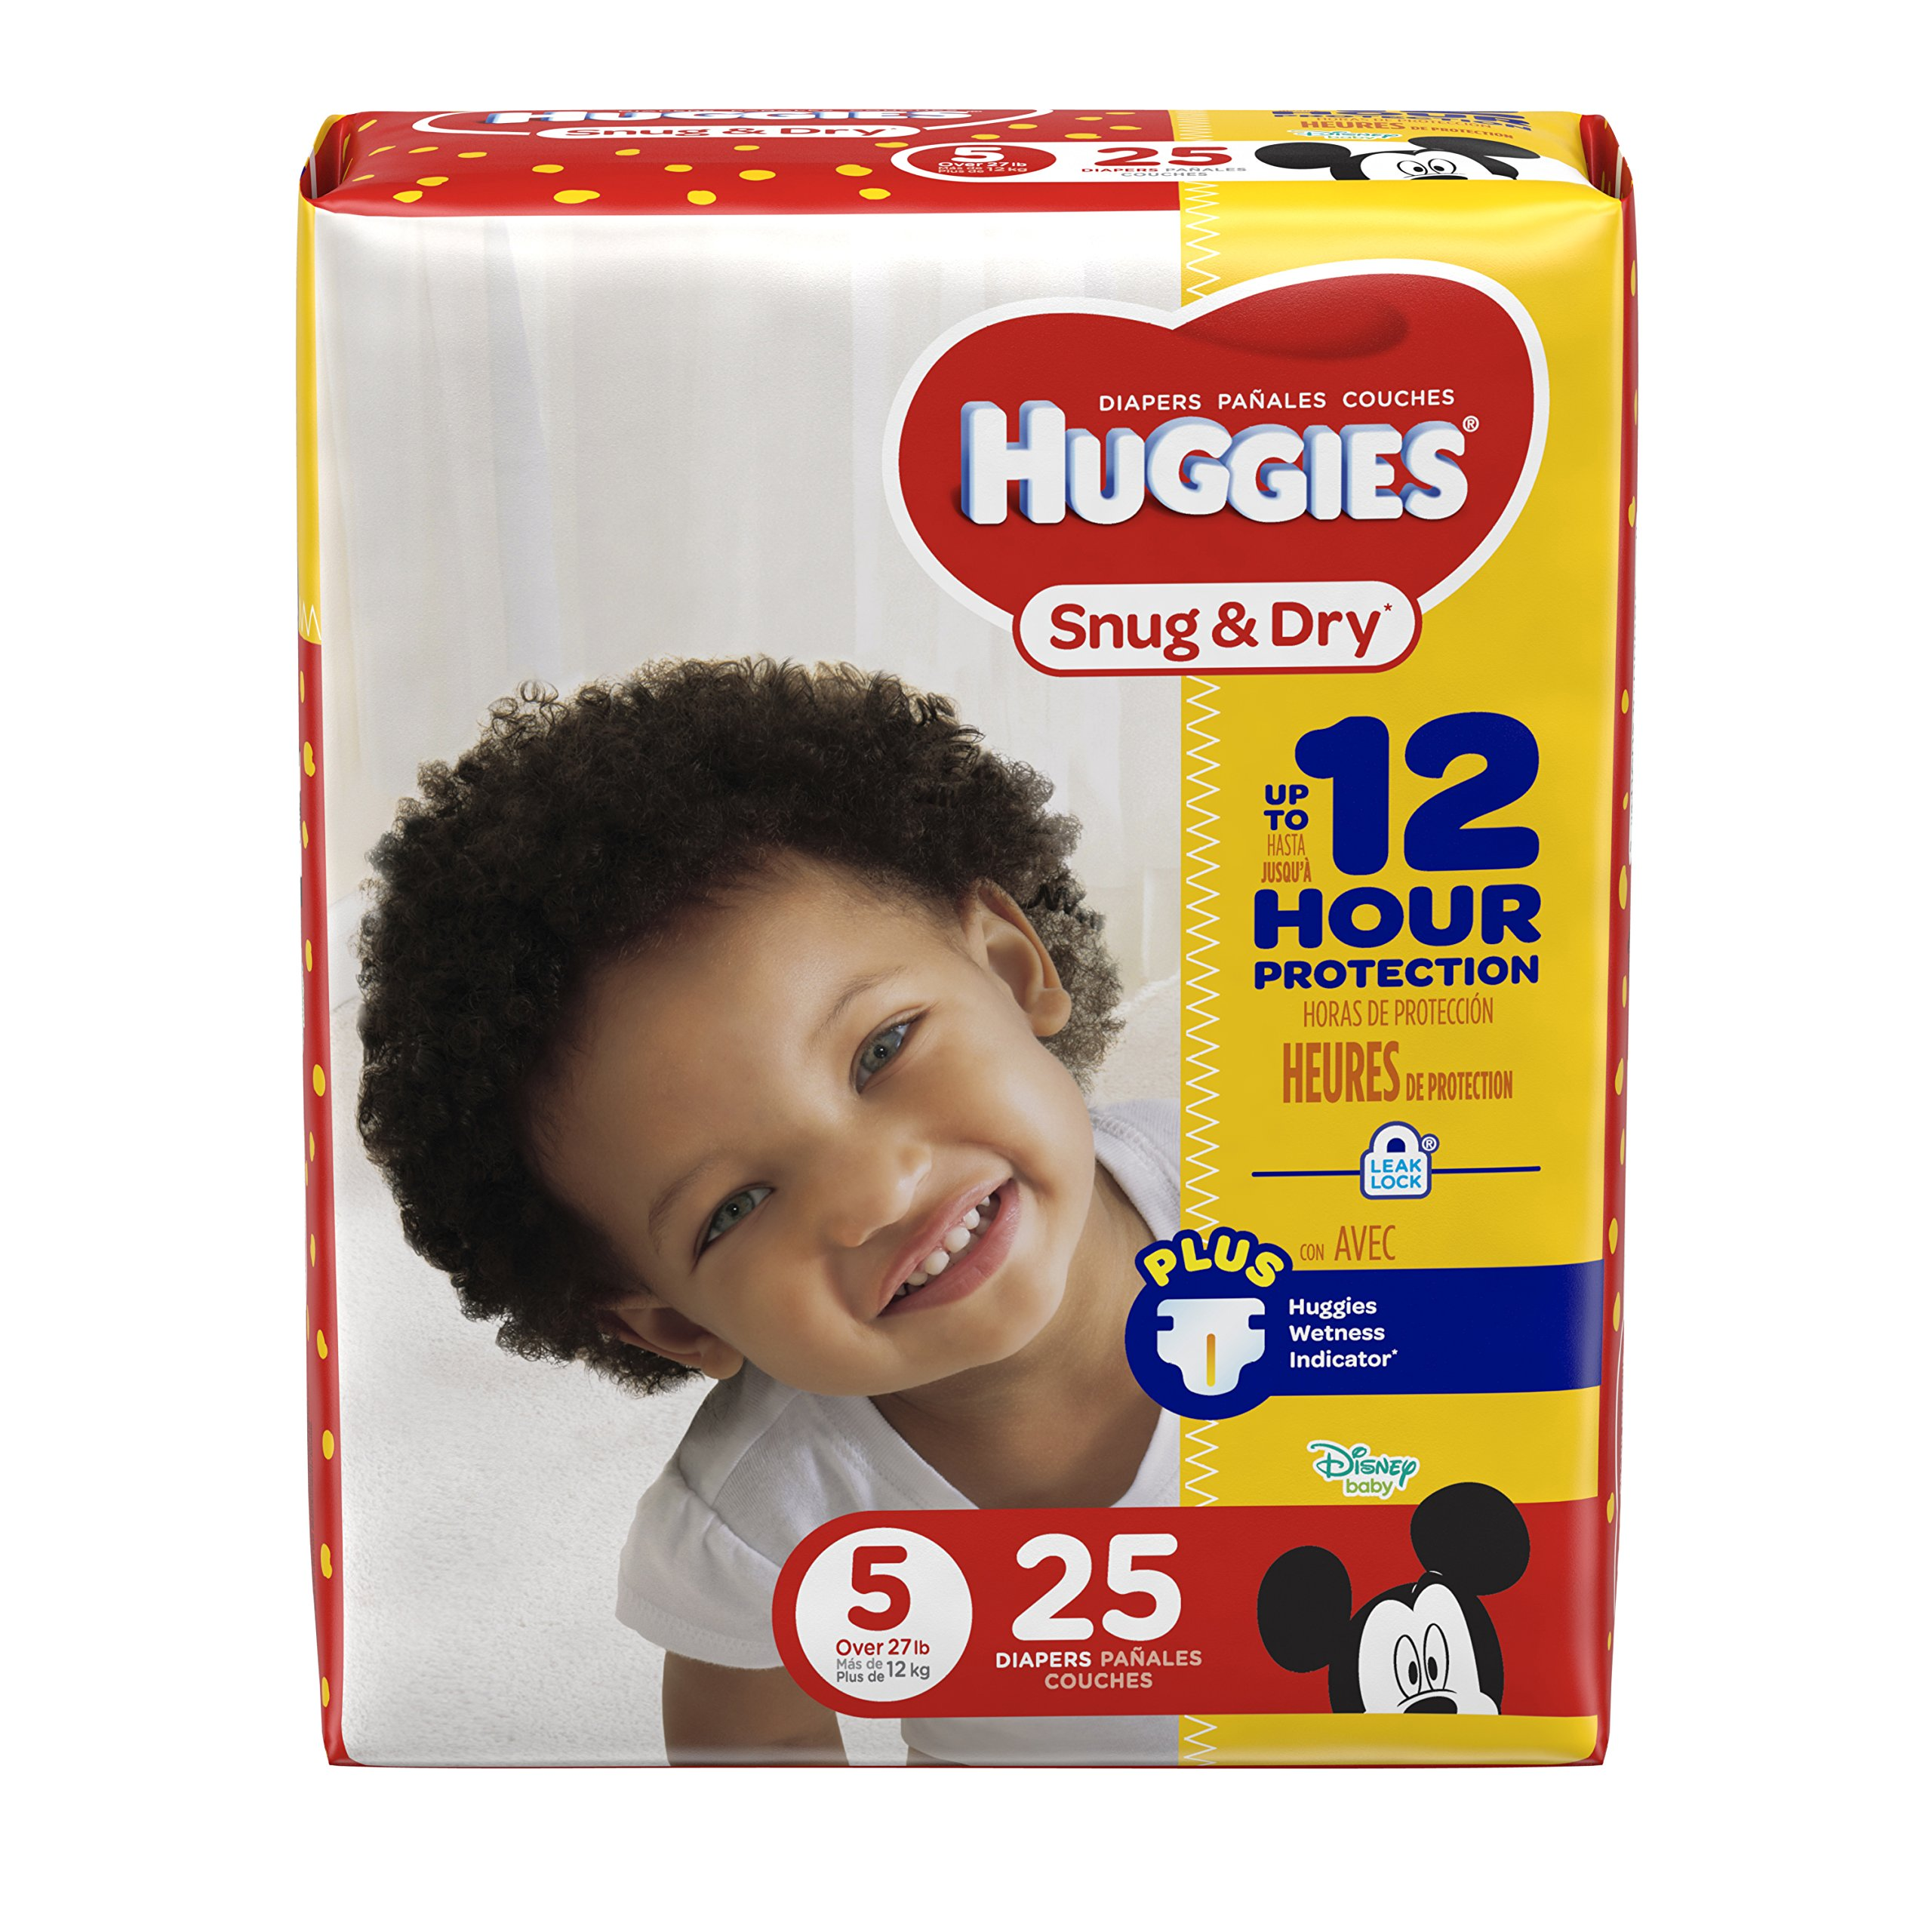 HUGGIES Snug & Dry Diapers, Size 5, 25 Count, JUMBO PACK (Packaging